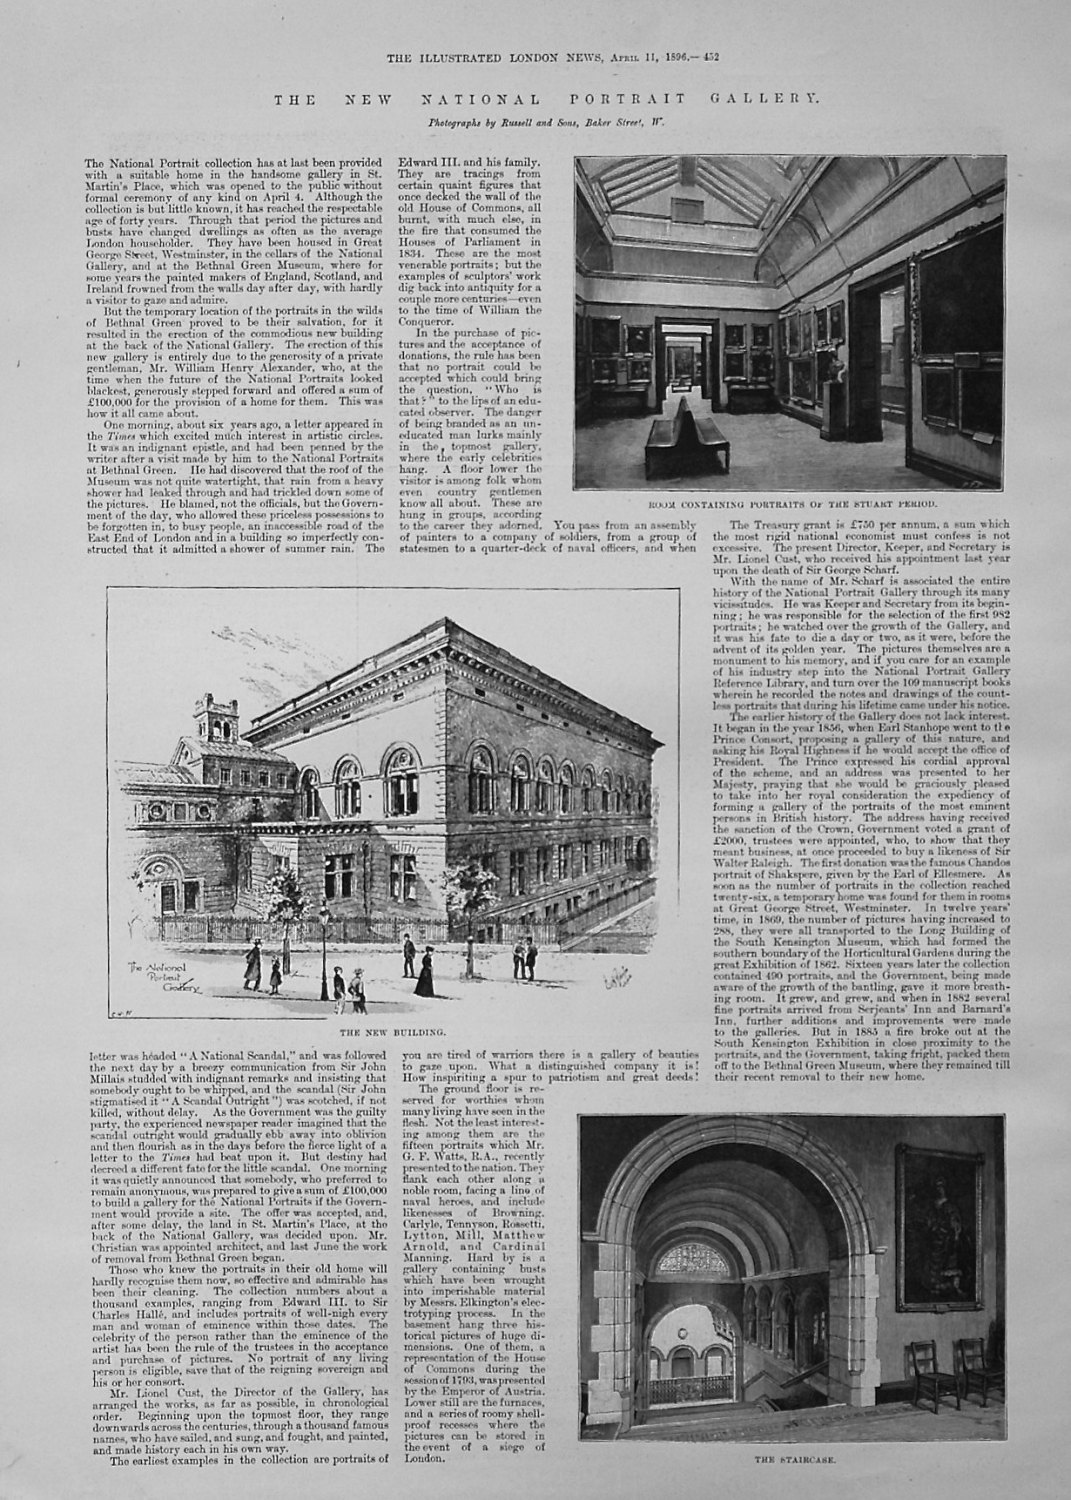 The New National Portrait Gallery. 1896